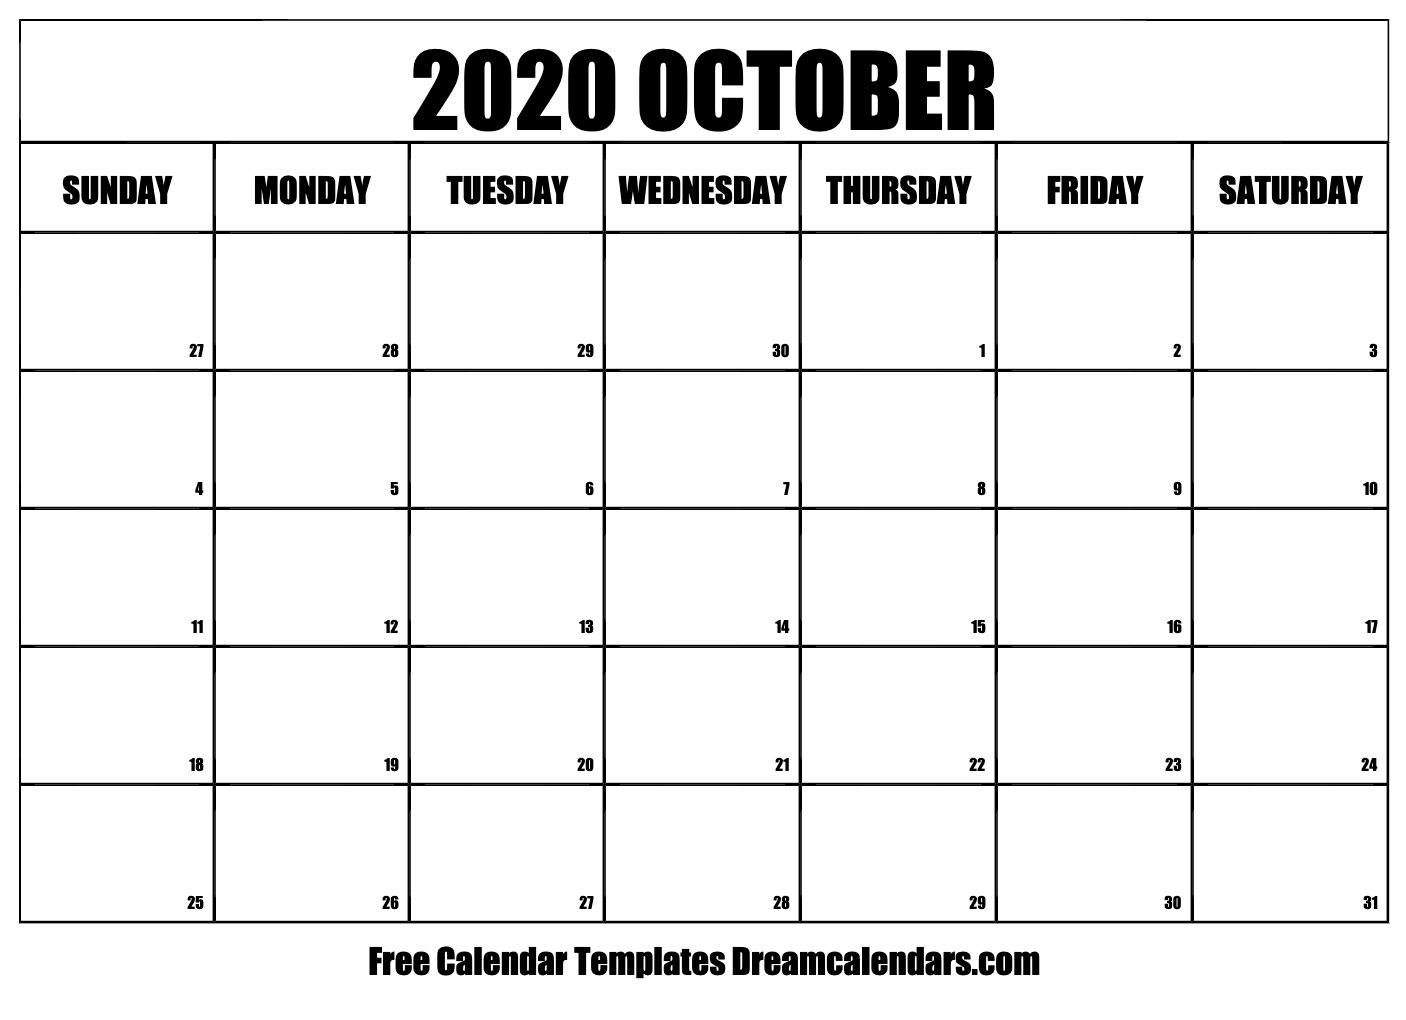 2020 Oct Calendar Printable October 2020 Calendar